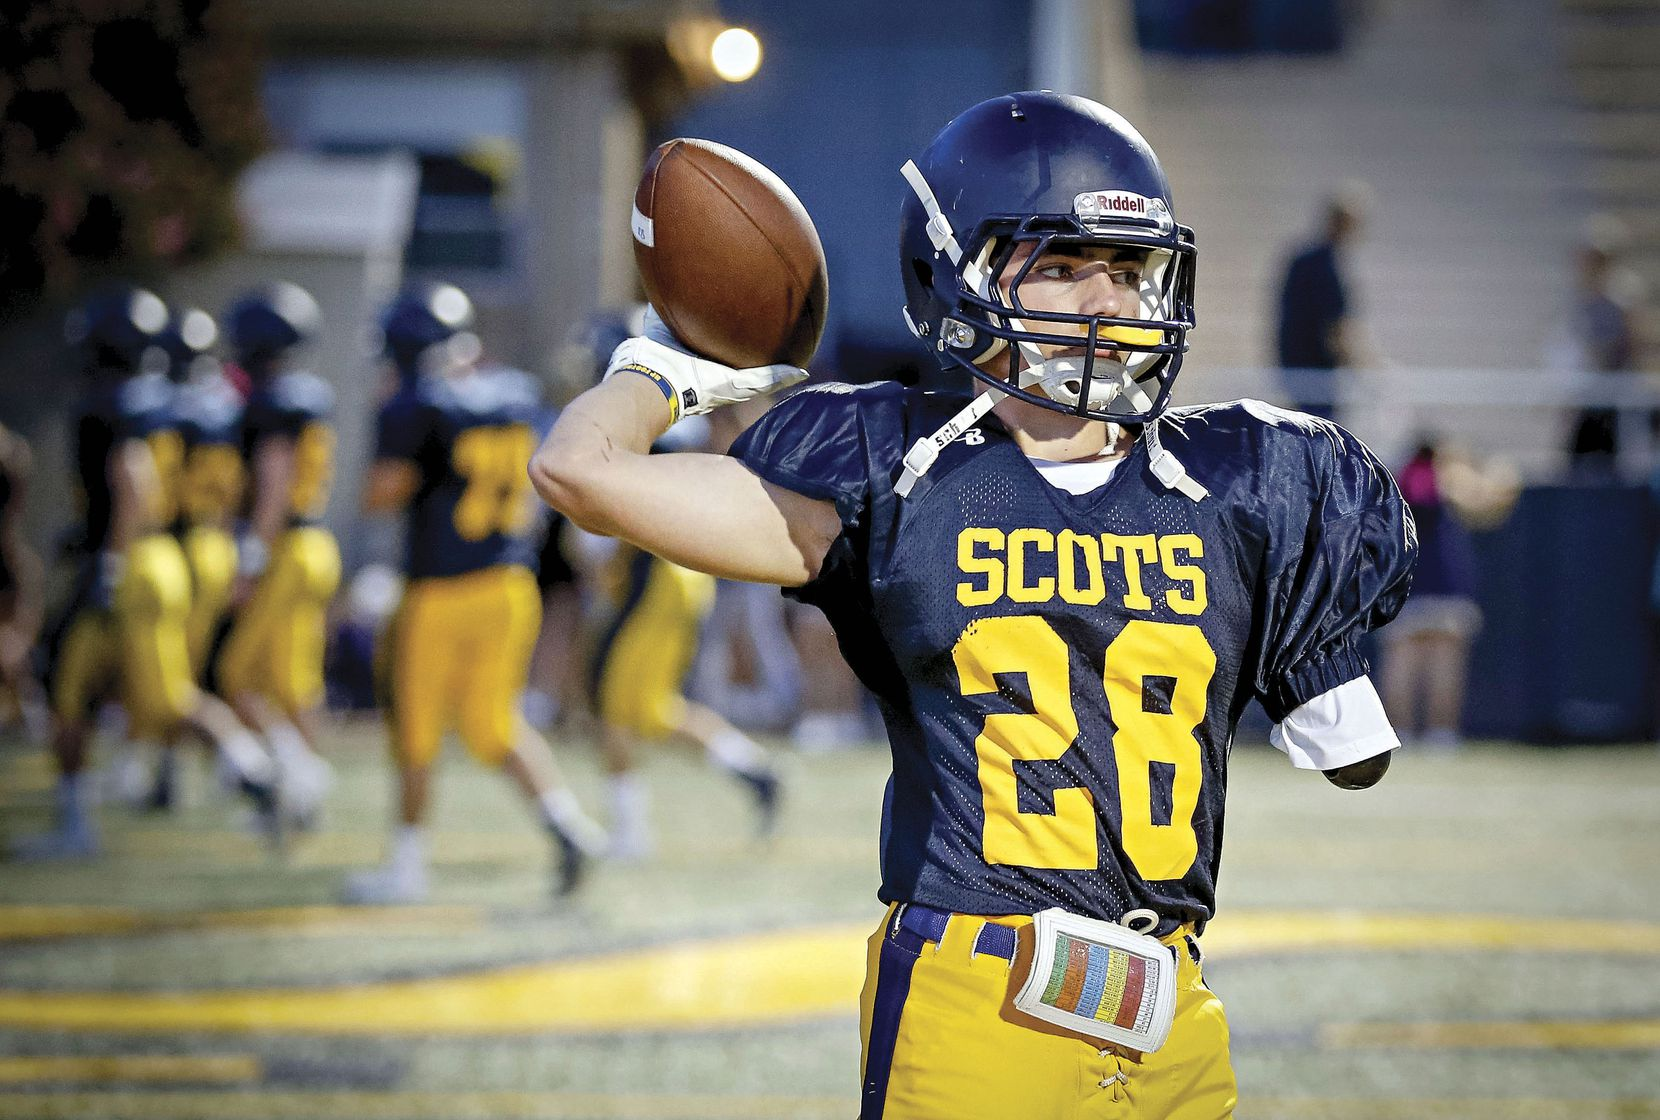 Cole Jackson warmed up before the Highland Park football game against West Mesquite on Oct. 6 in Highland Park. Jackson, a running back on the junior varsity team, lost most of his left arm two years ago after an accident on an all-terrain vehicle.